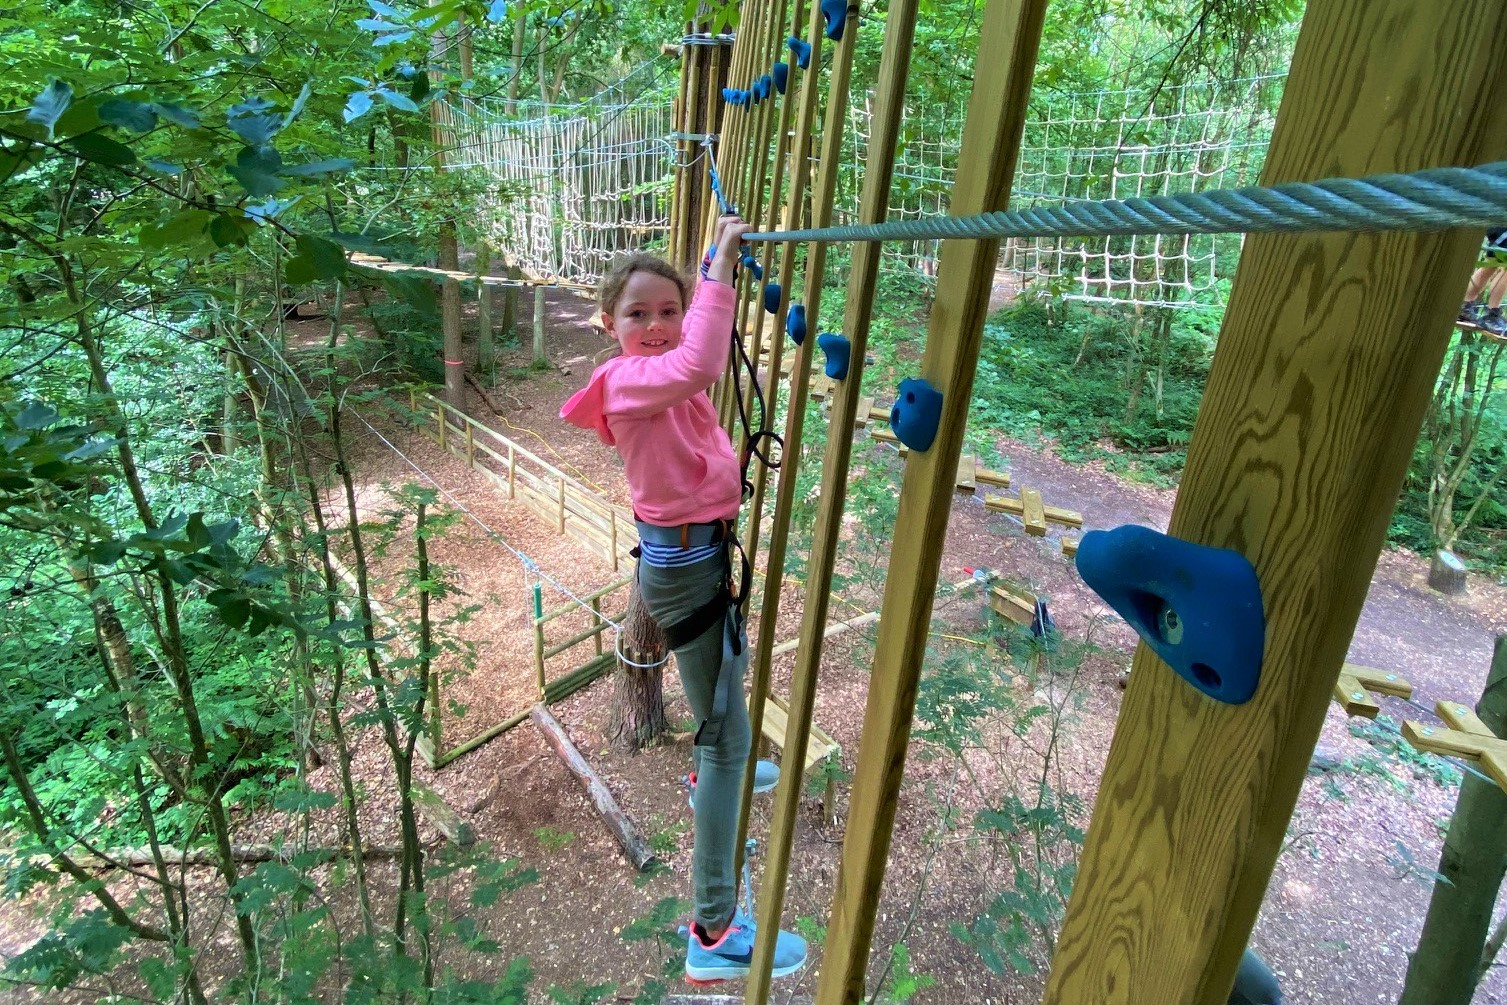 Girl in a pink top on a Go Ape crossing